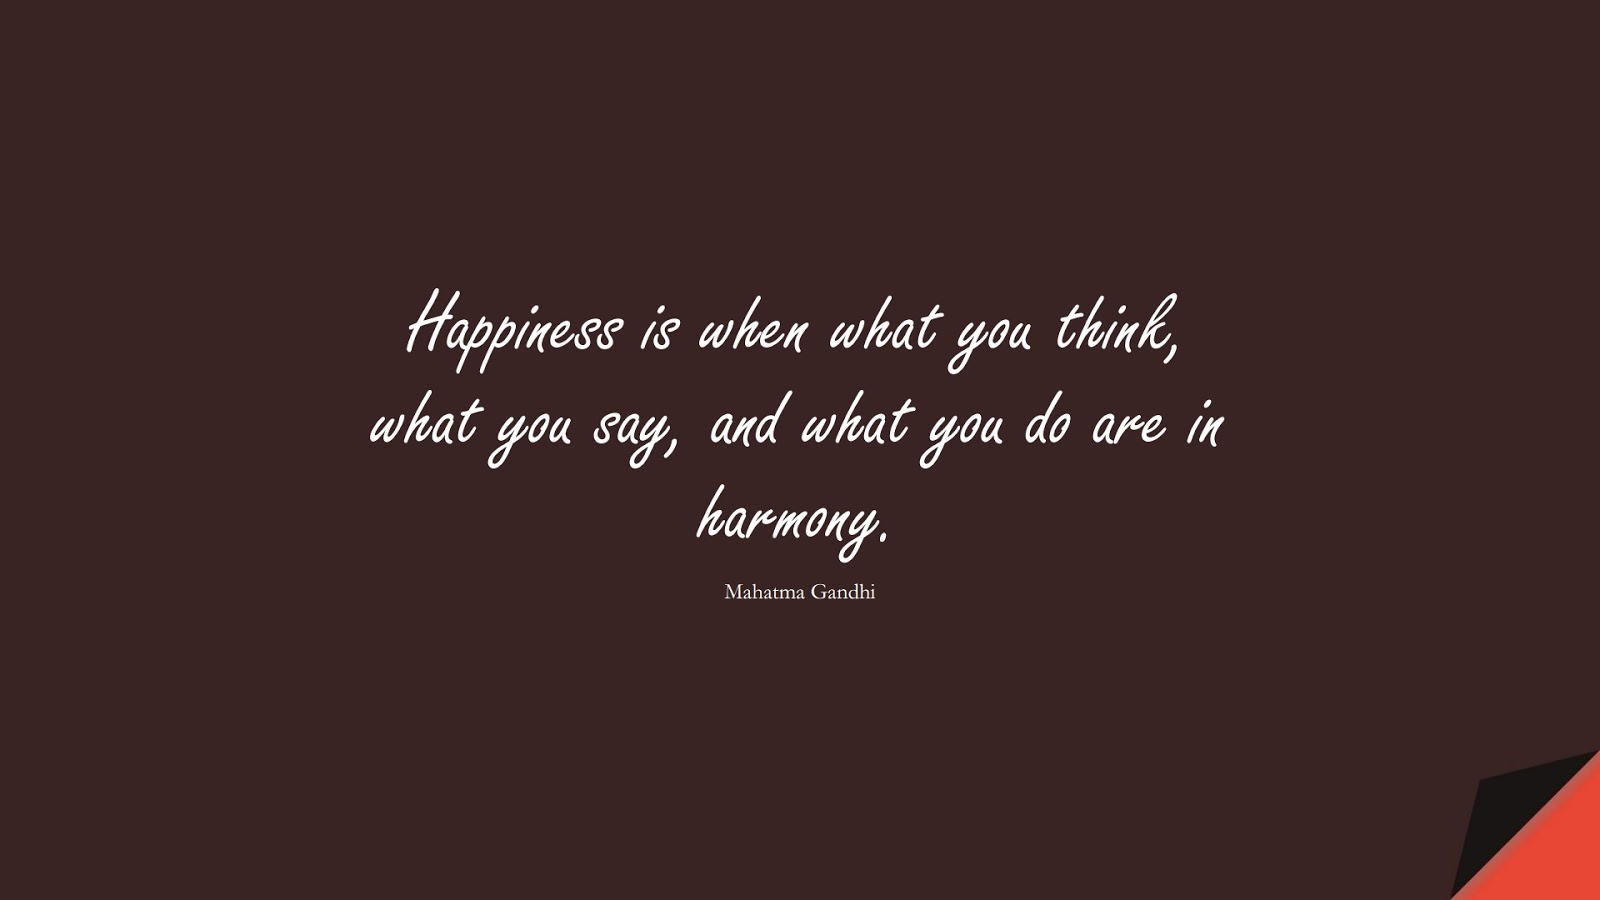 Happiness is when what you think, what you say, and what you do are in harmony. (Mahatma Gandhi);  #HealthQuotes